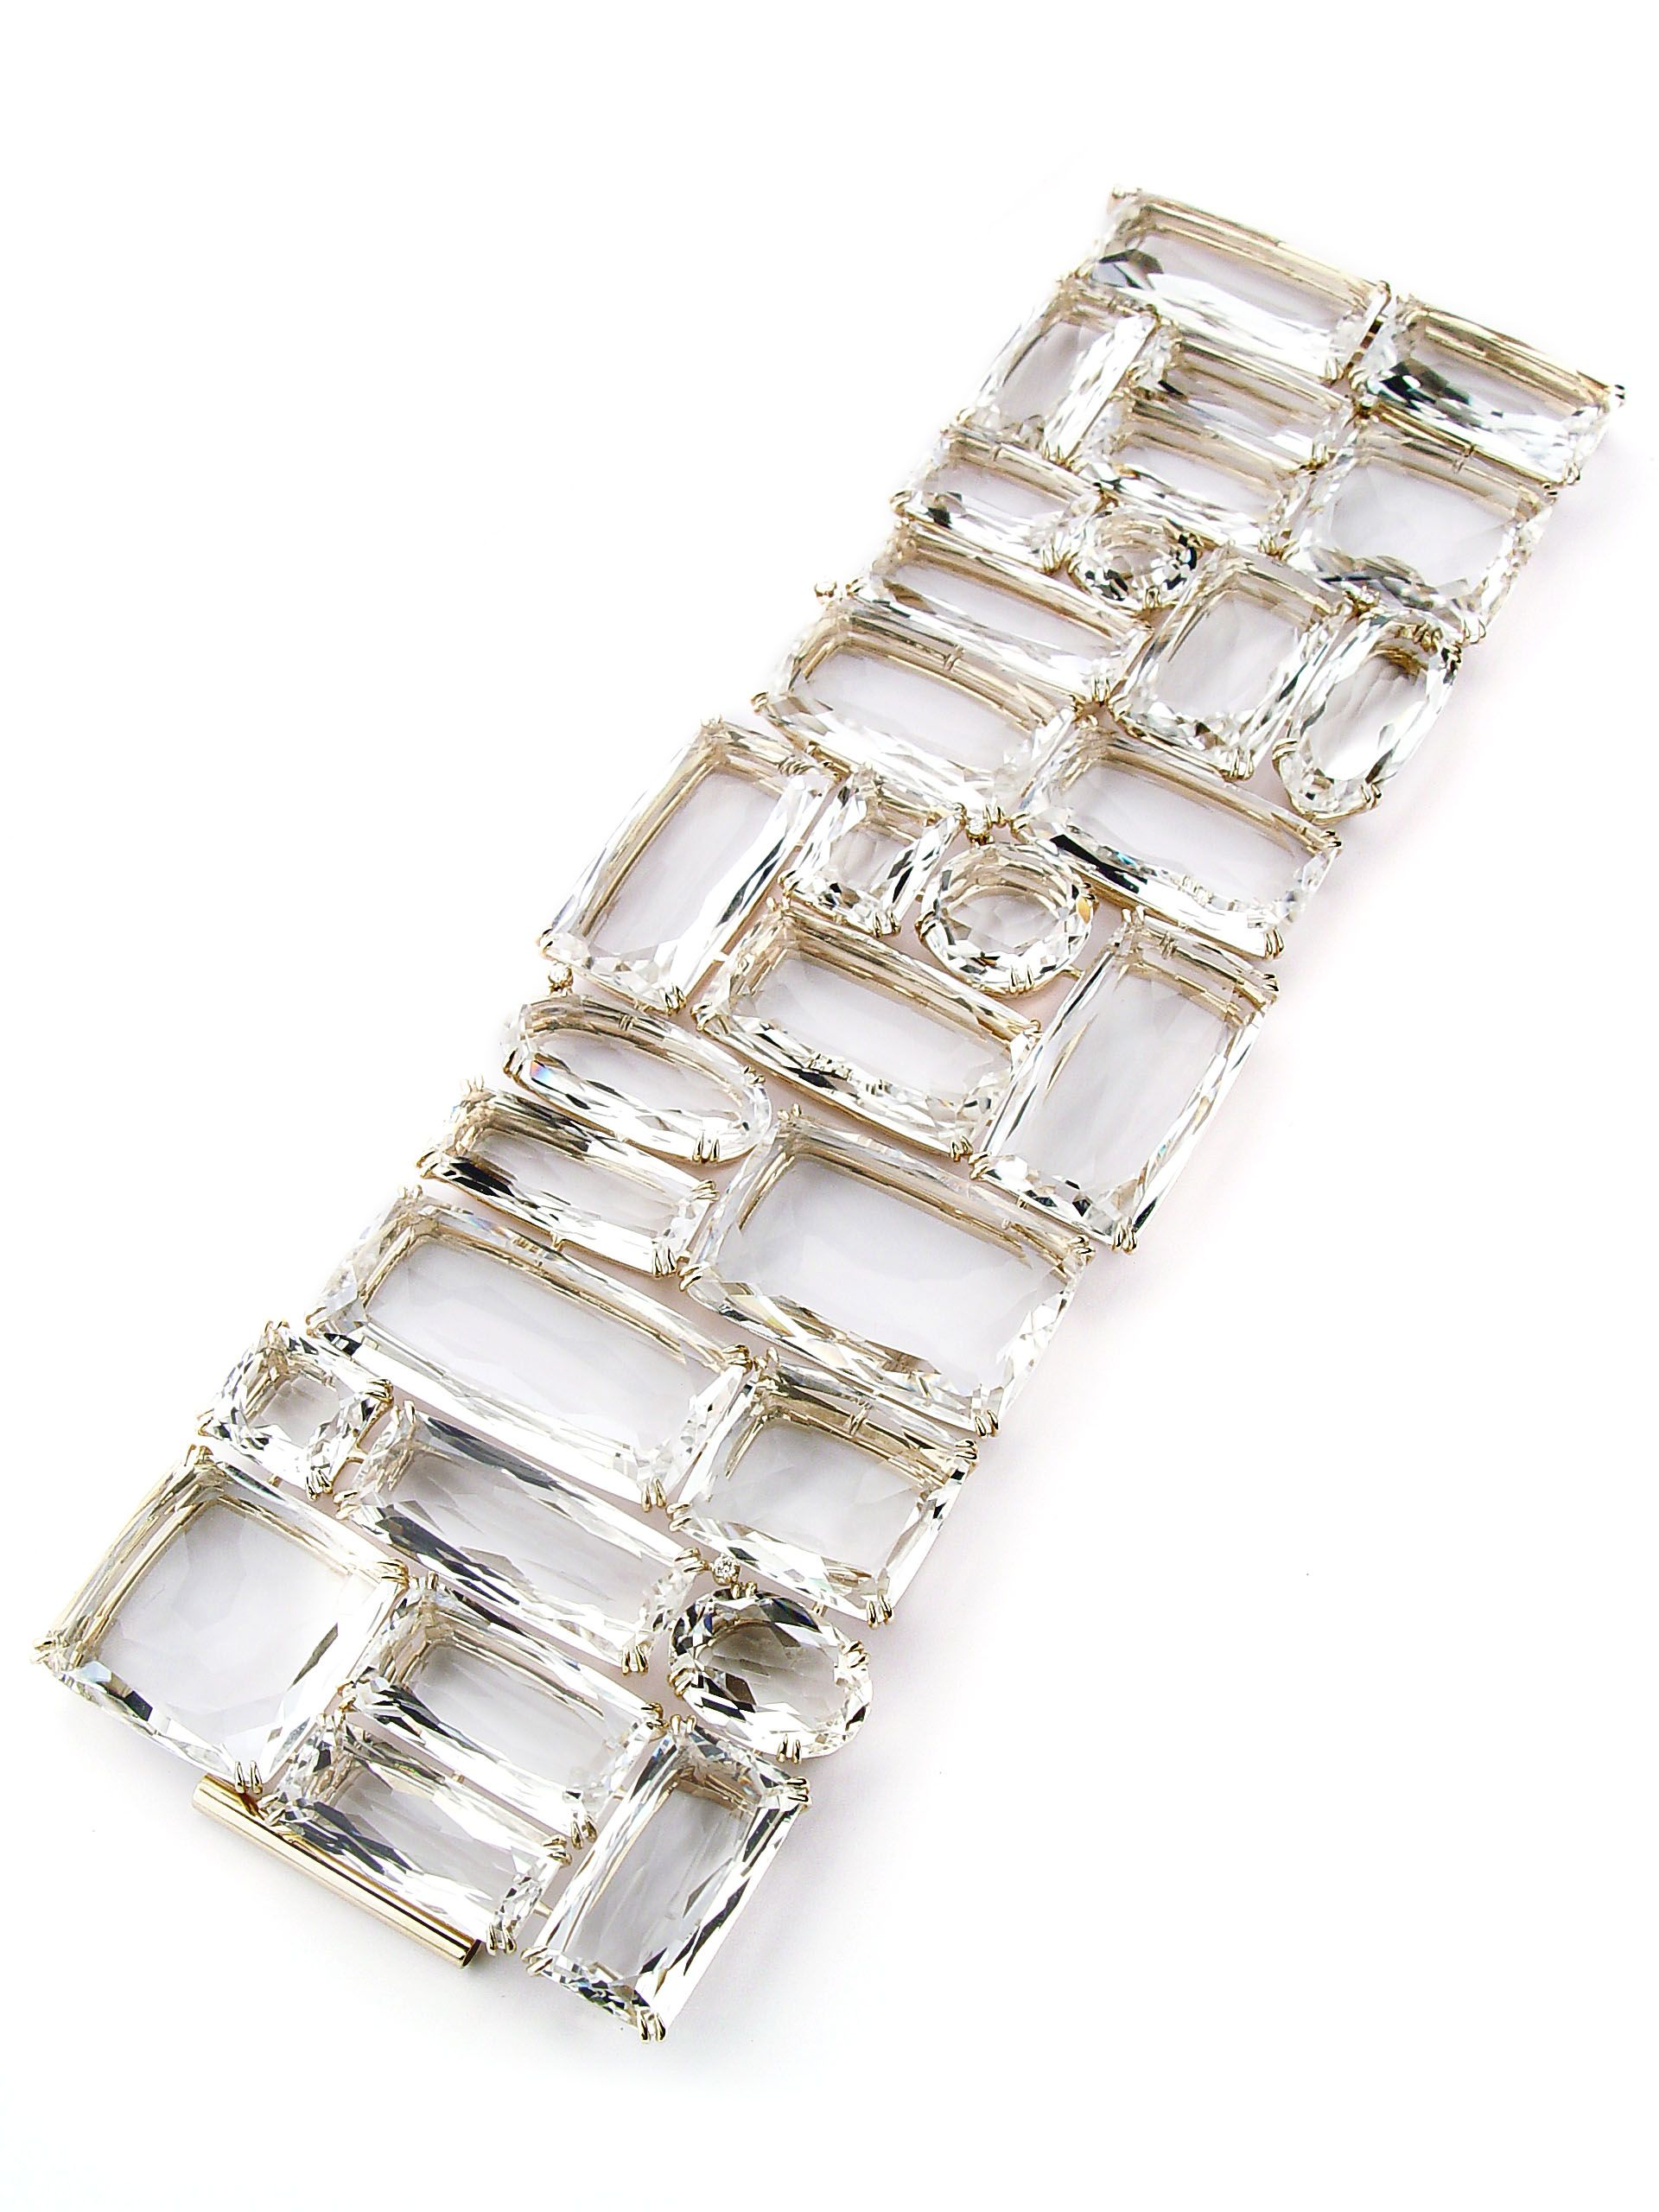 H.Stern Cobblestones bracelet in 18K yellow gold with rock crystal ...